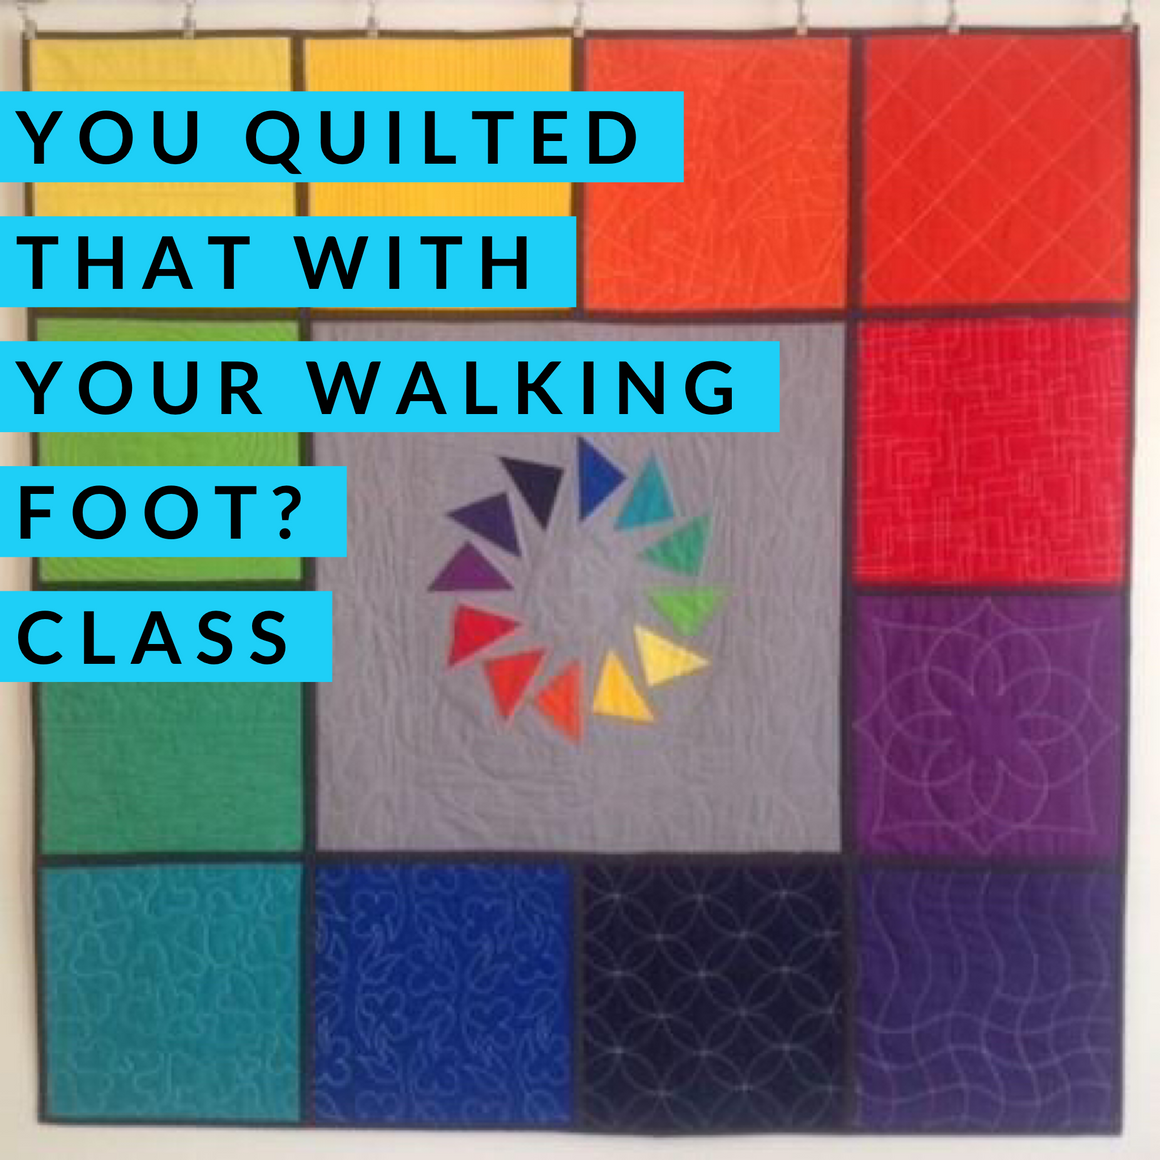 You Quilted That With Your Walking Foot? - 2 Day Extended, -[variant_title] - Mad About Patchwork, Mad About Patchwork.